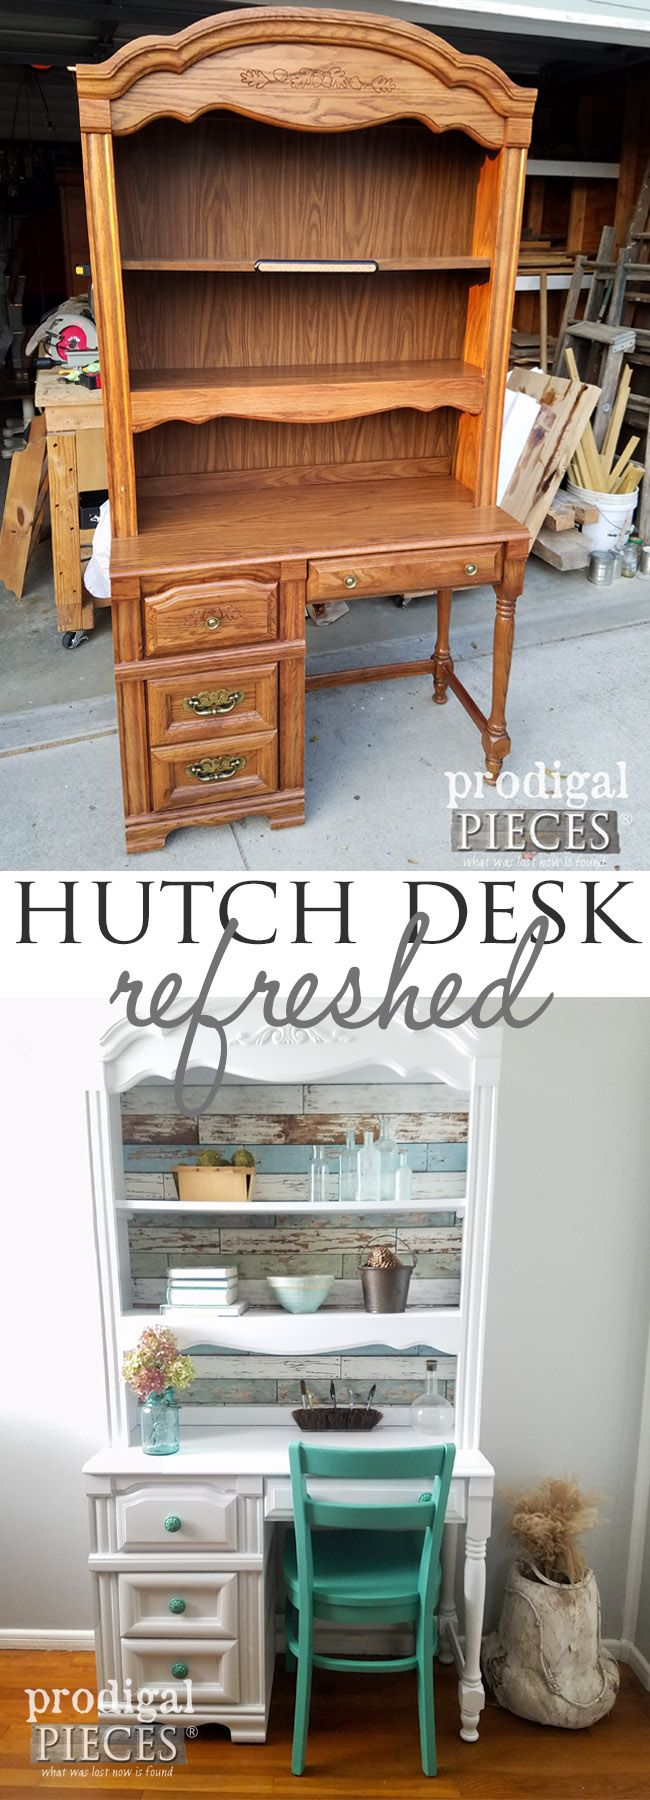 Broyhill Hutch Desk Refreshed with Removable Wallpaper